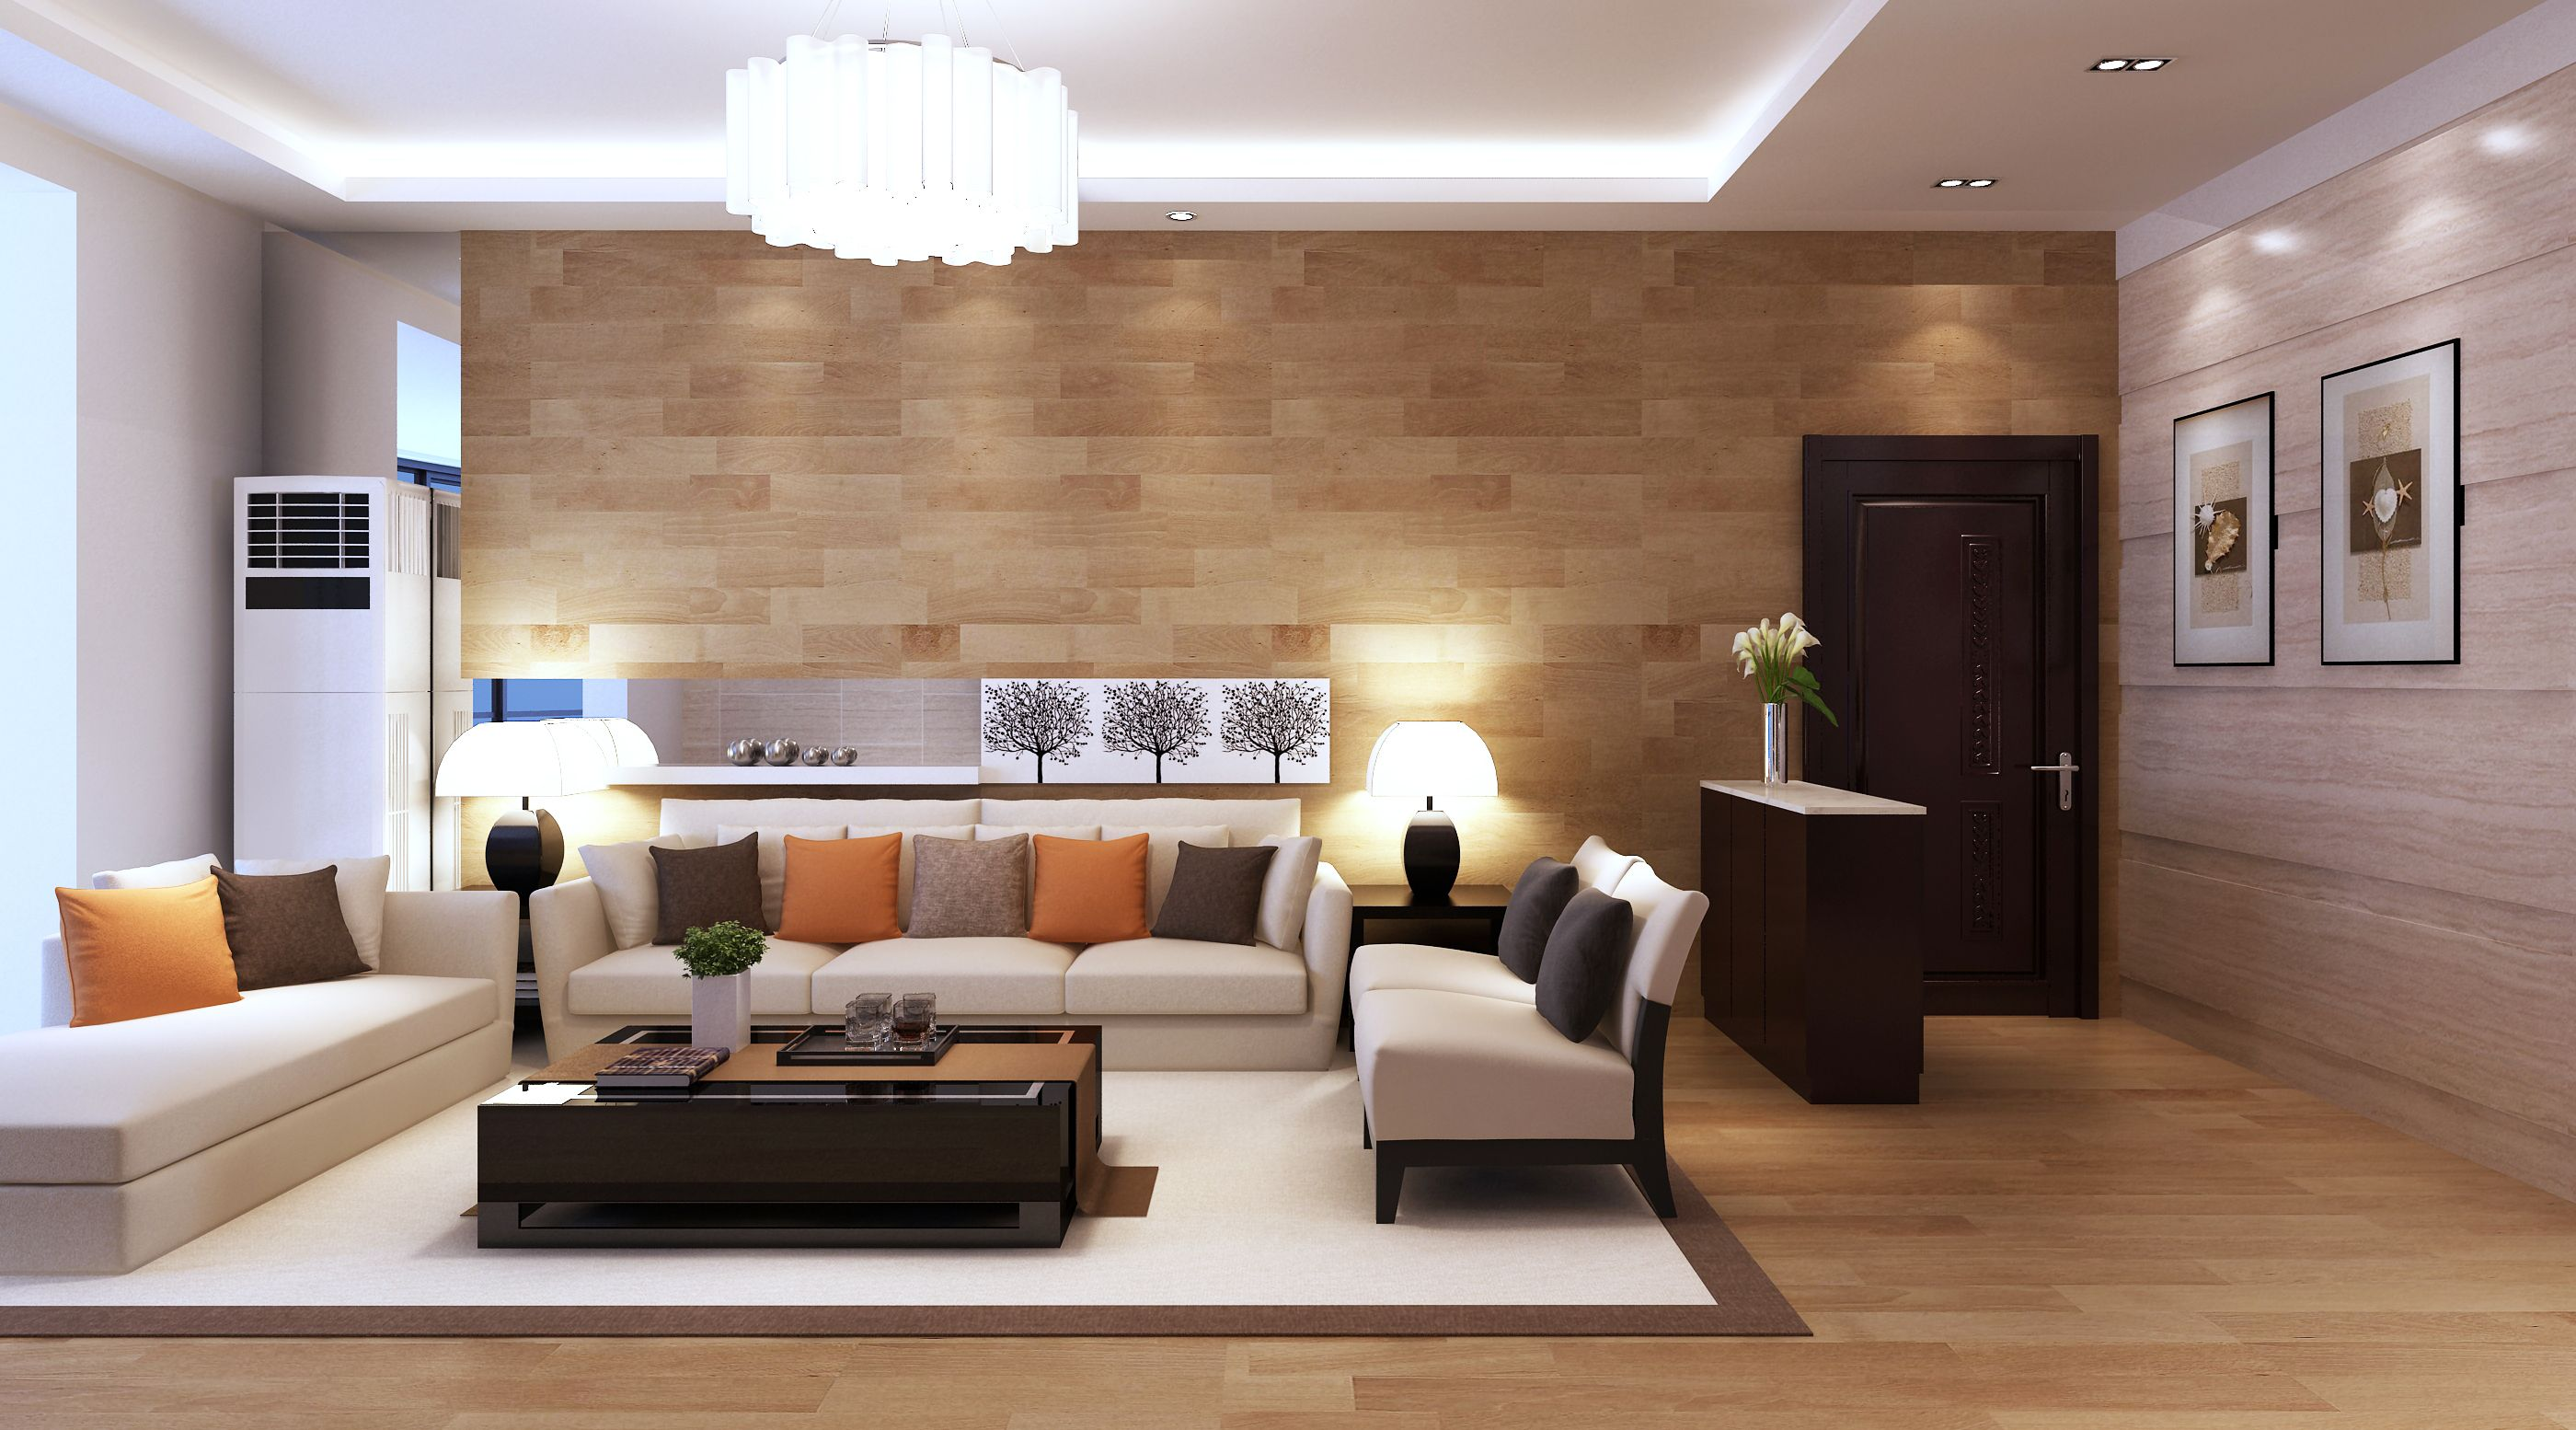 Endearing modern living room pictures with endearing glass endearing chandelier and very popular modern living room